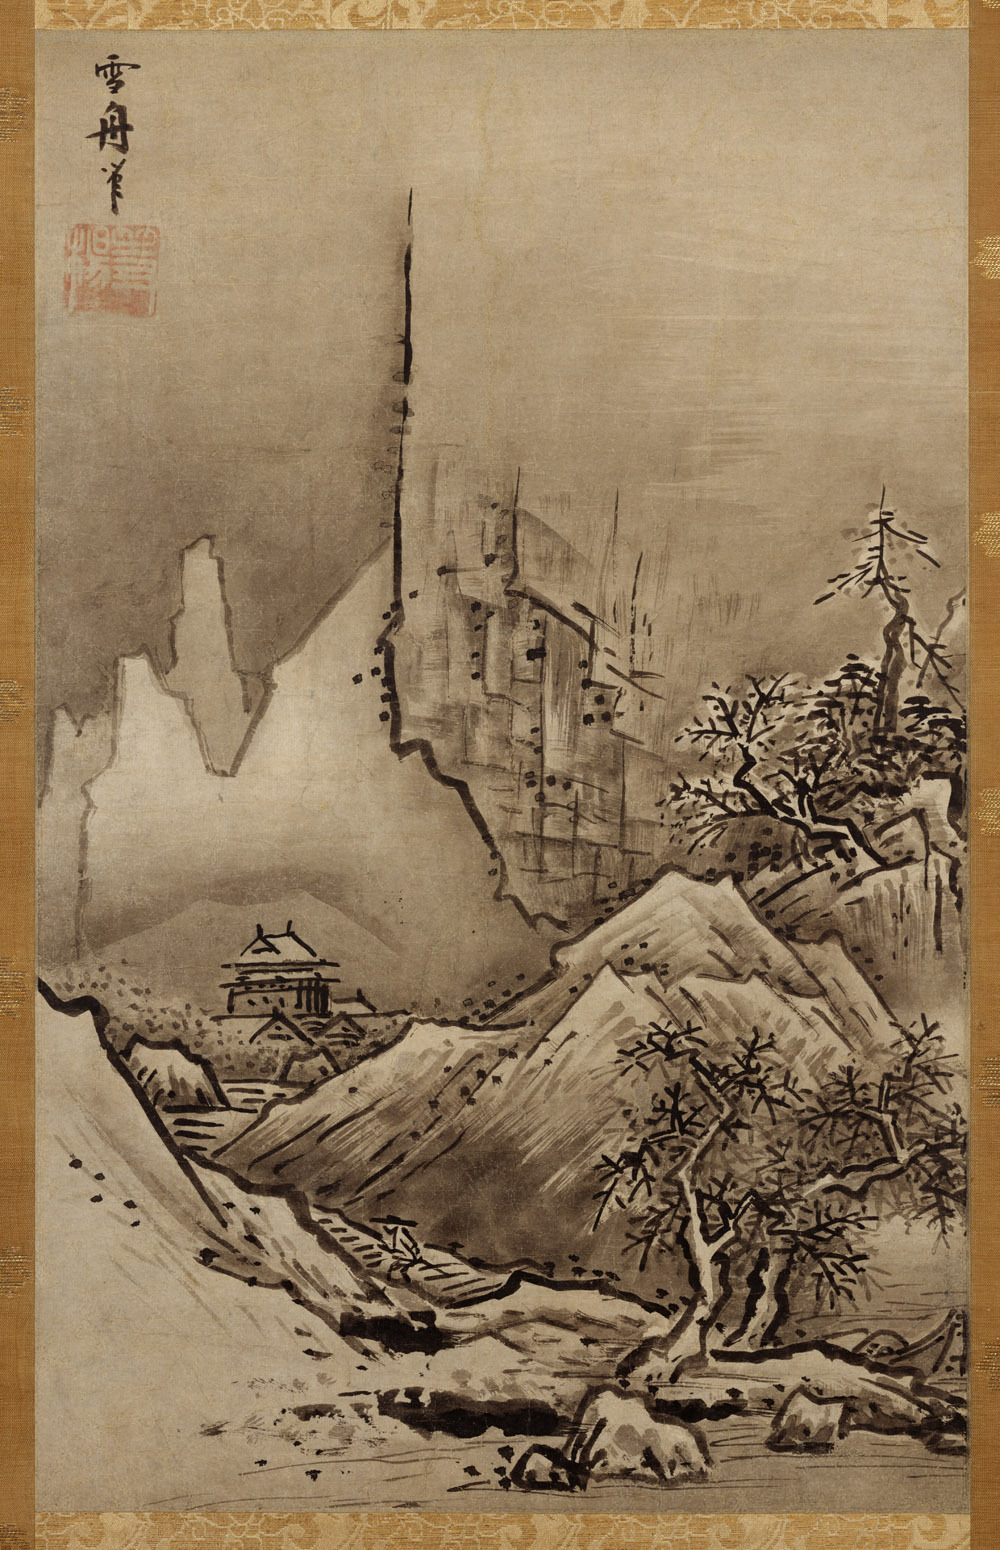 medieval:  Landscape of Fall and Winter by Sesshū Tōyō. Muromachi period, 15th C.